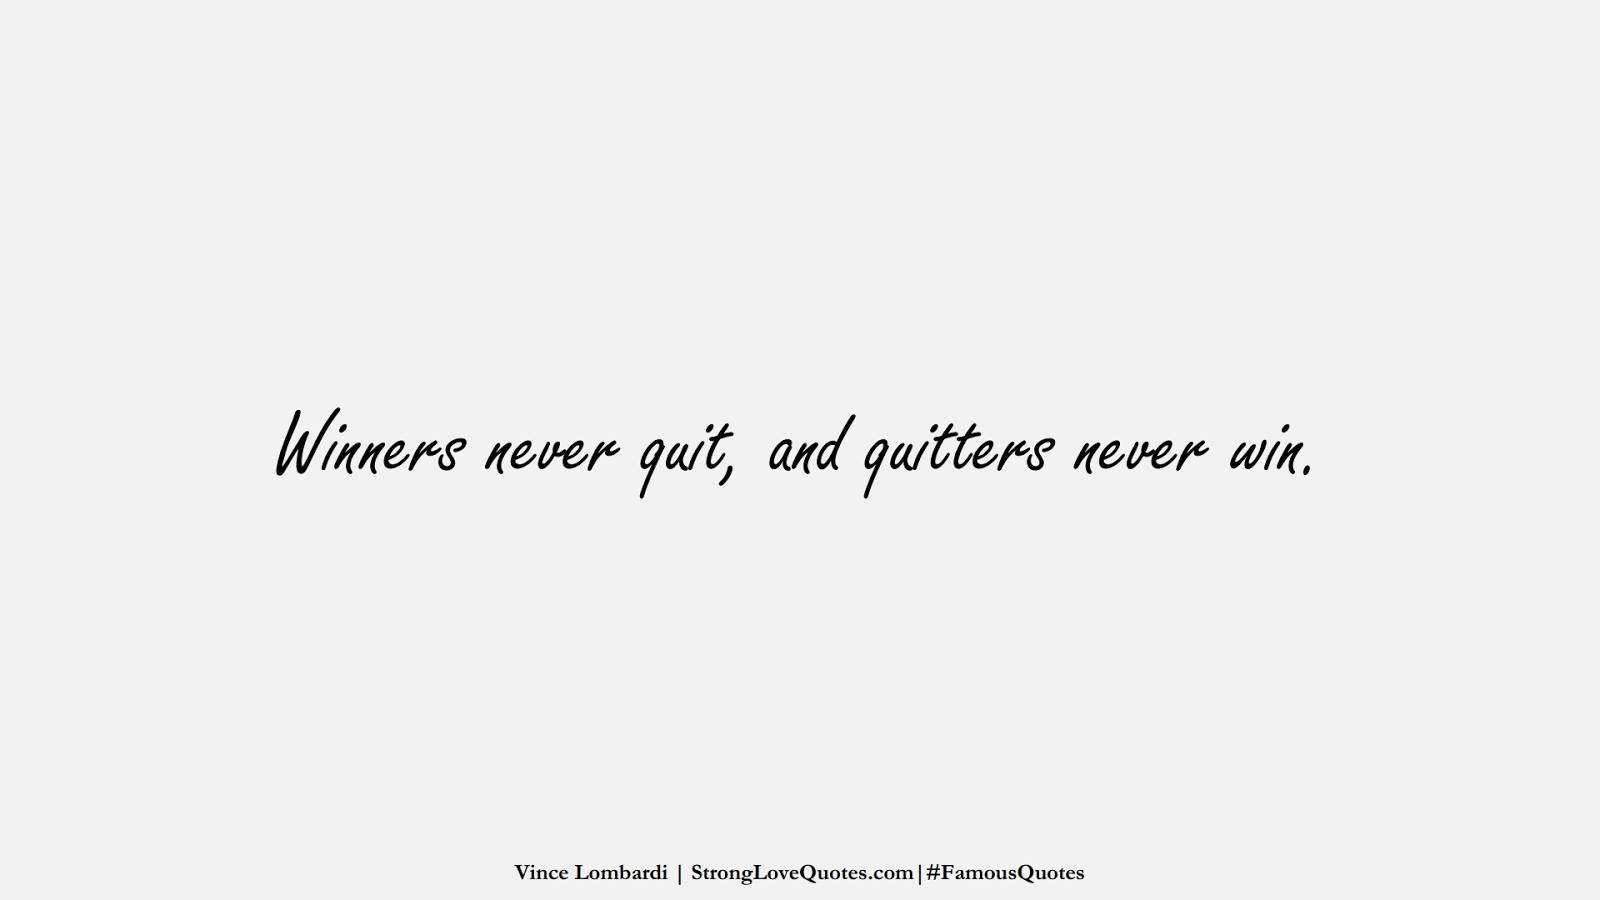 Winners never quit, and quitters never win. (Vince Lombardi);  #FamousQuotes